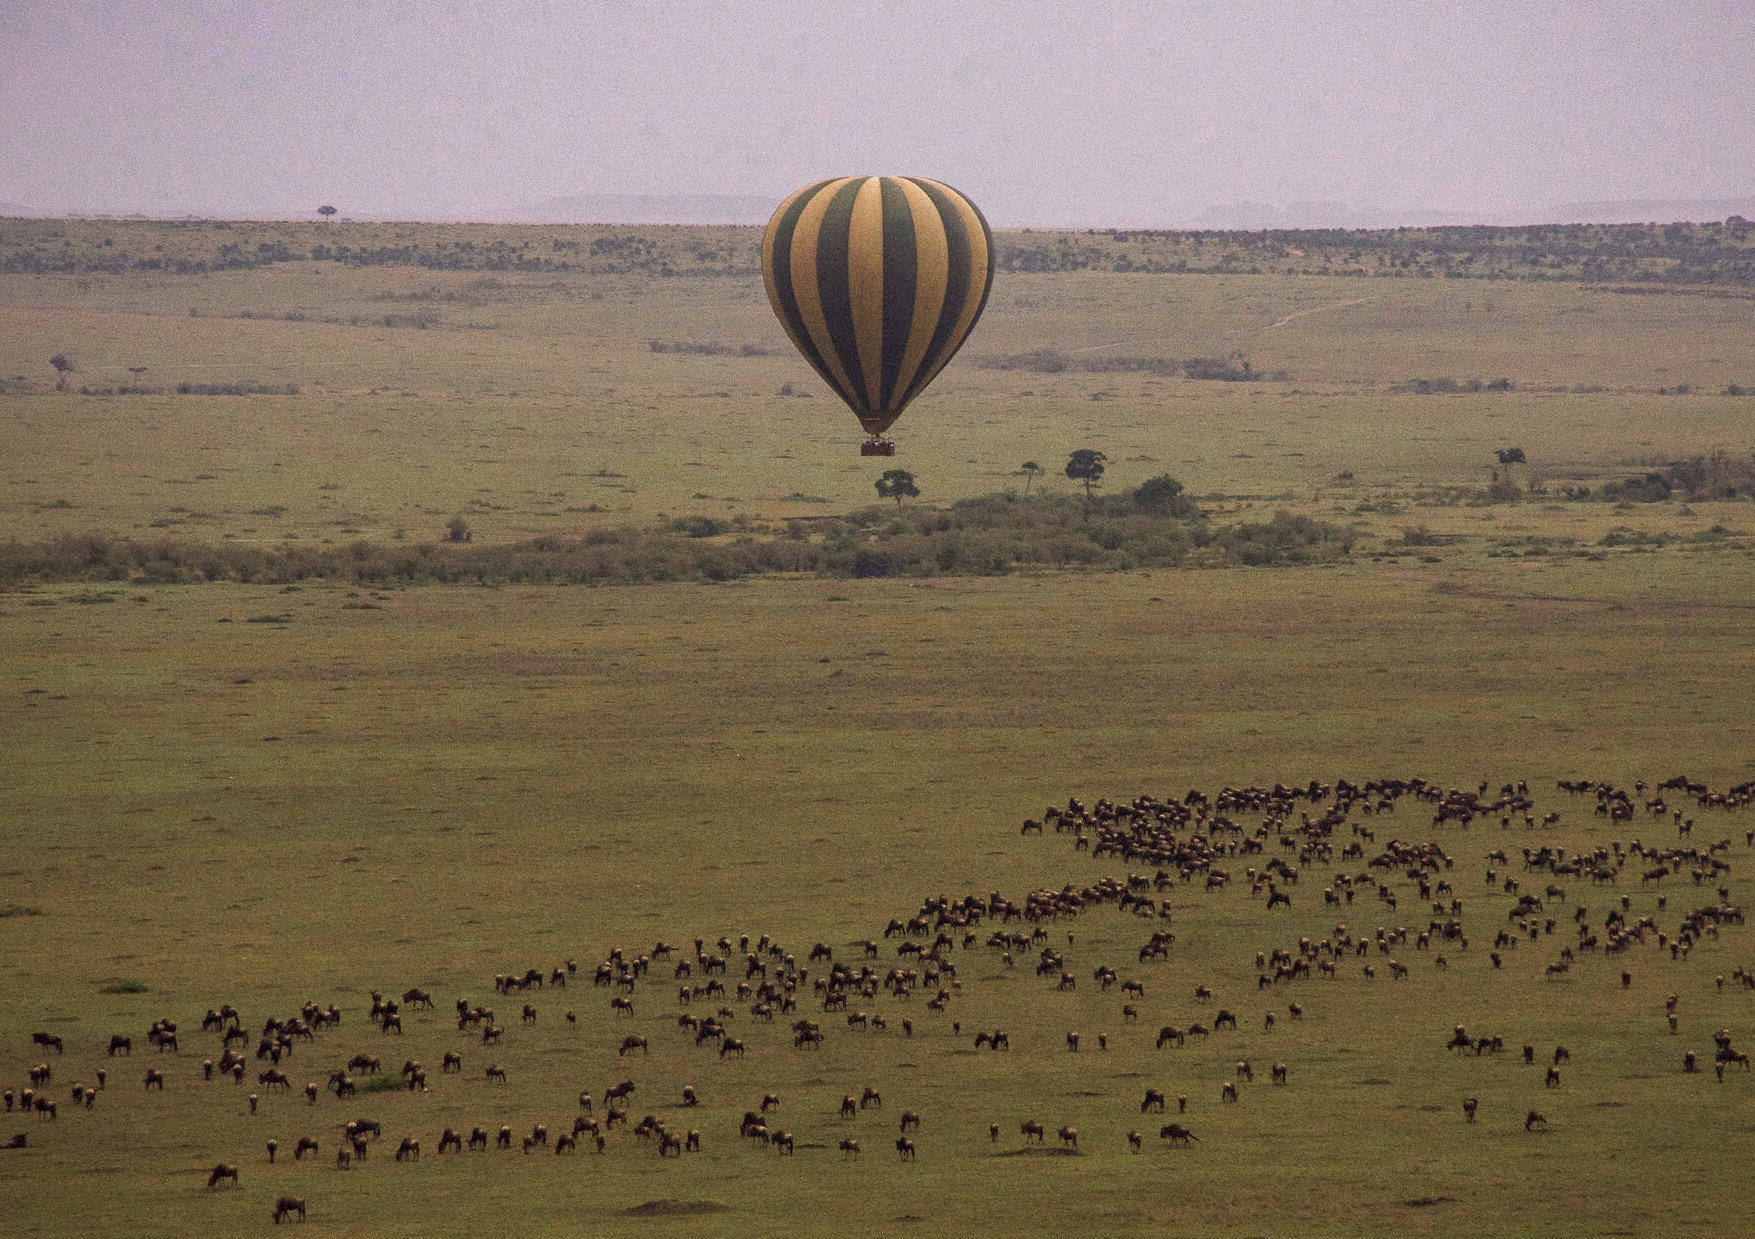 A green and yellow hot air balloon flying low above a huge group of wildebeest during the migration in the Maasai Mara